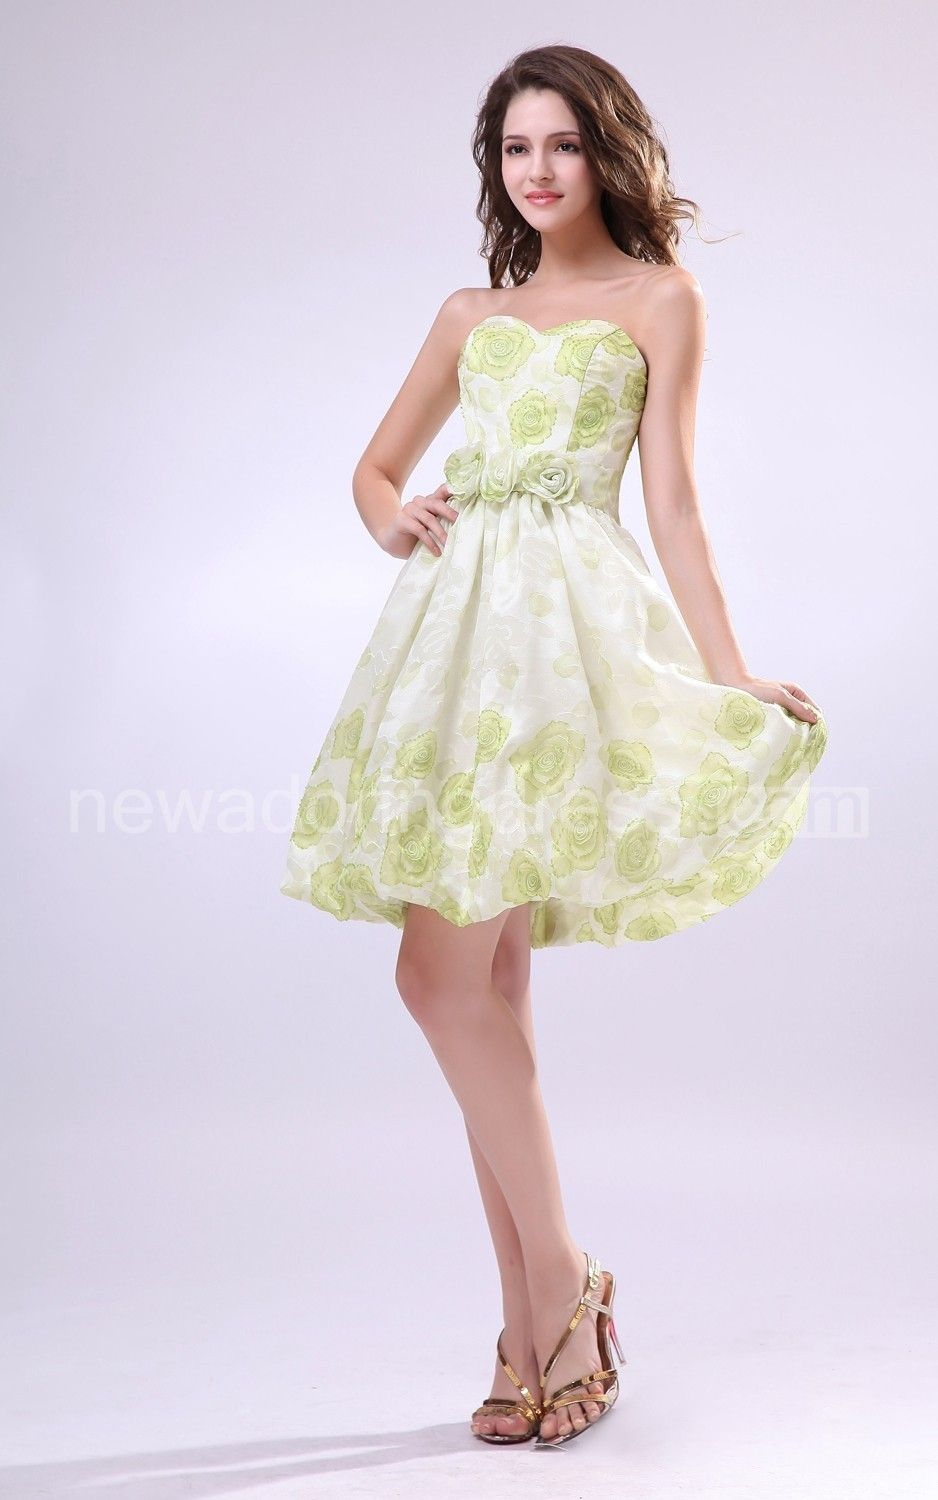 Wonderful Sweetheart Sleeveless Cute Style Dress With Floral Print